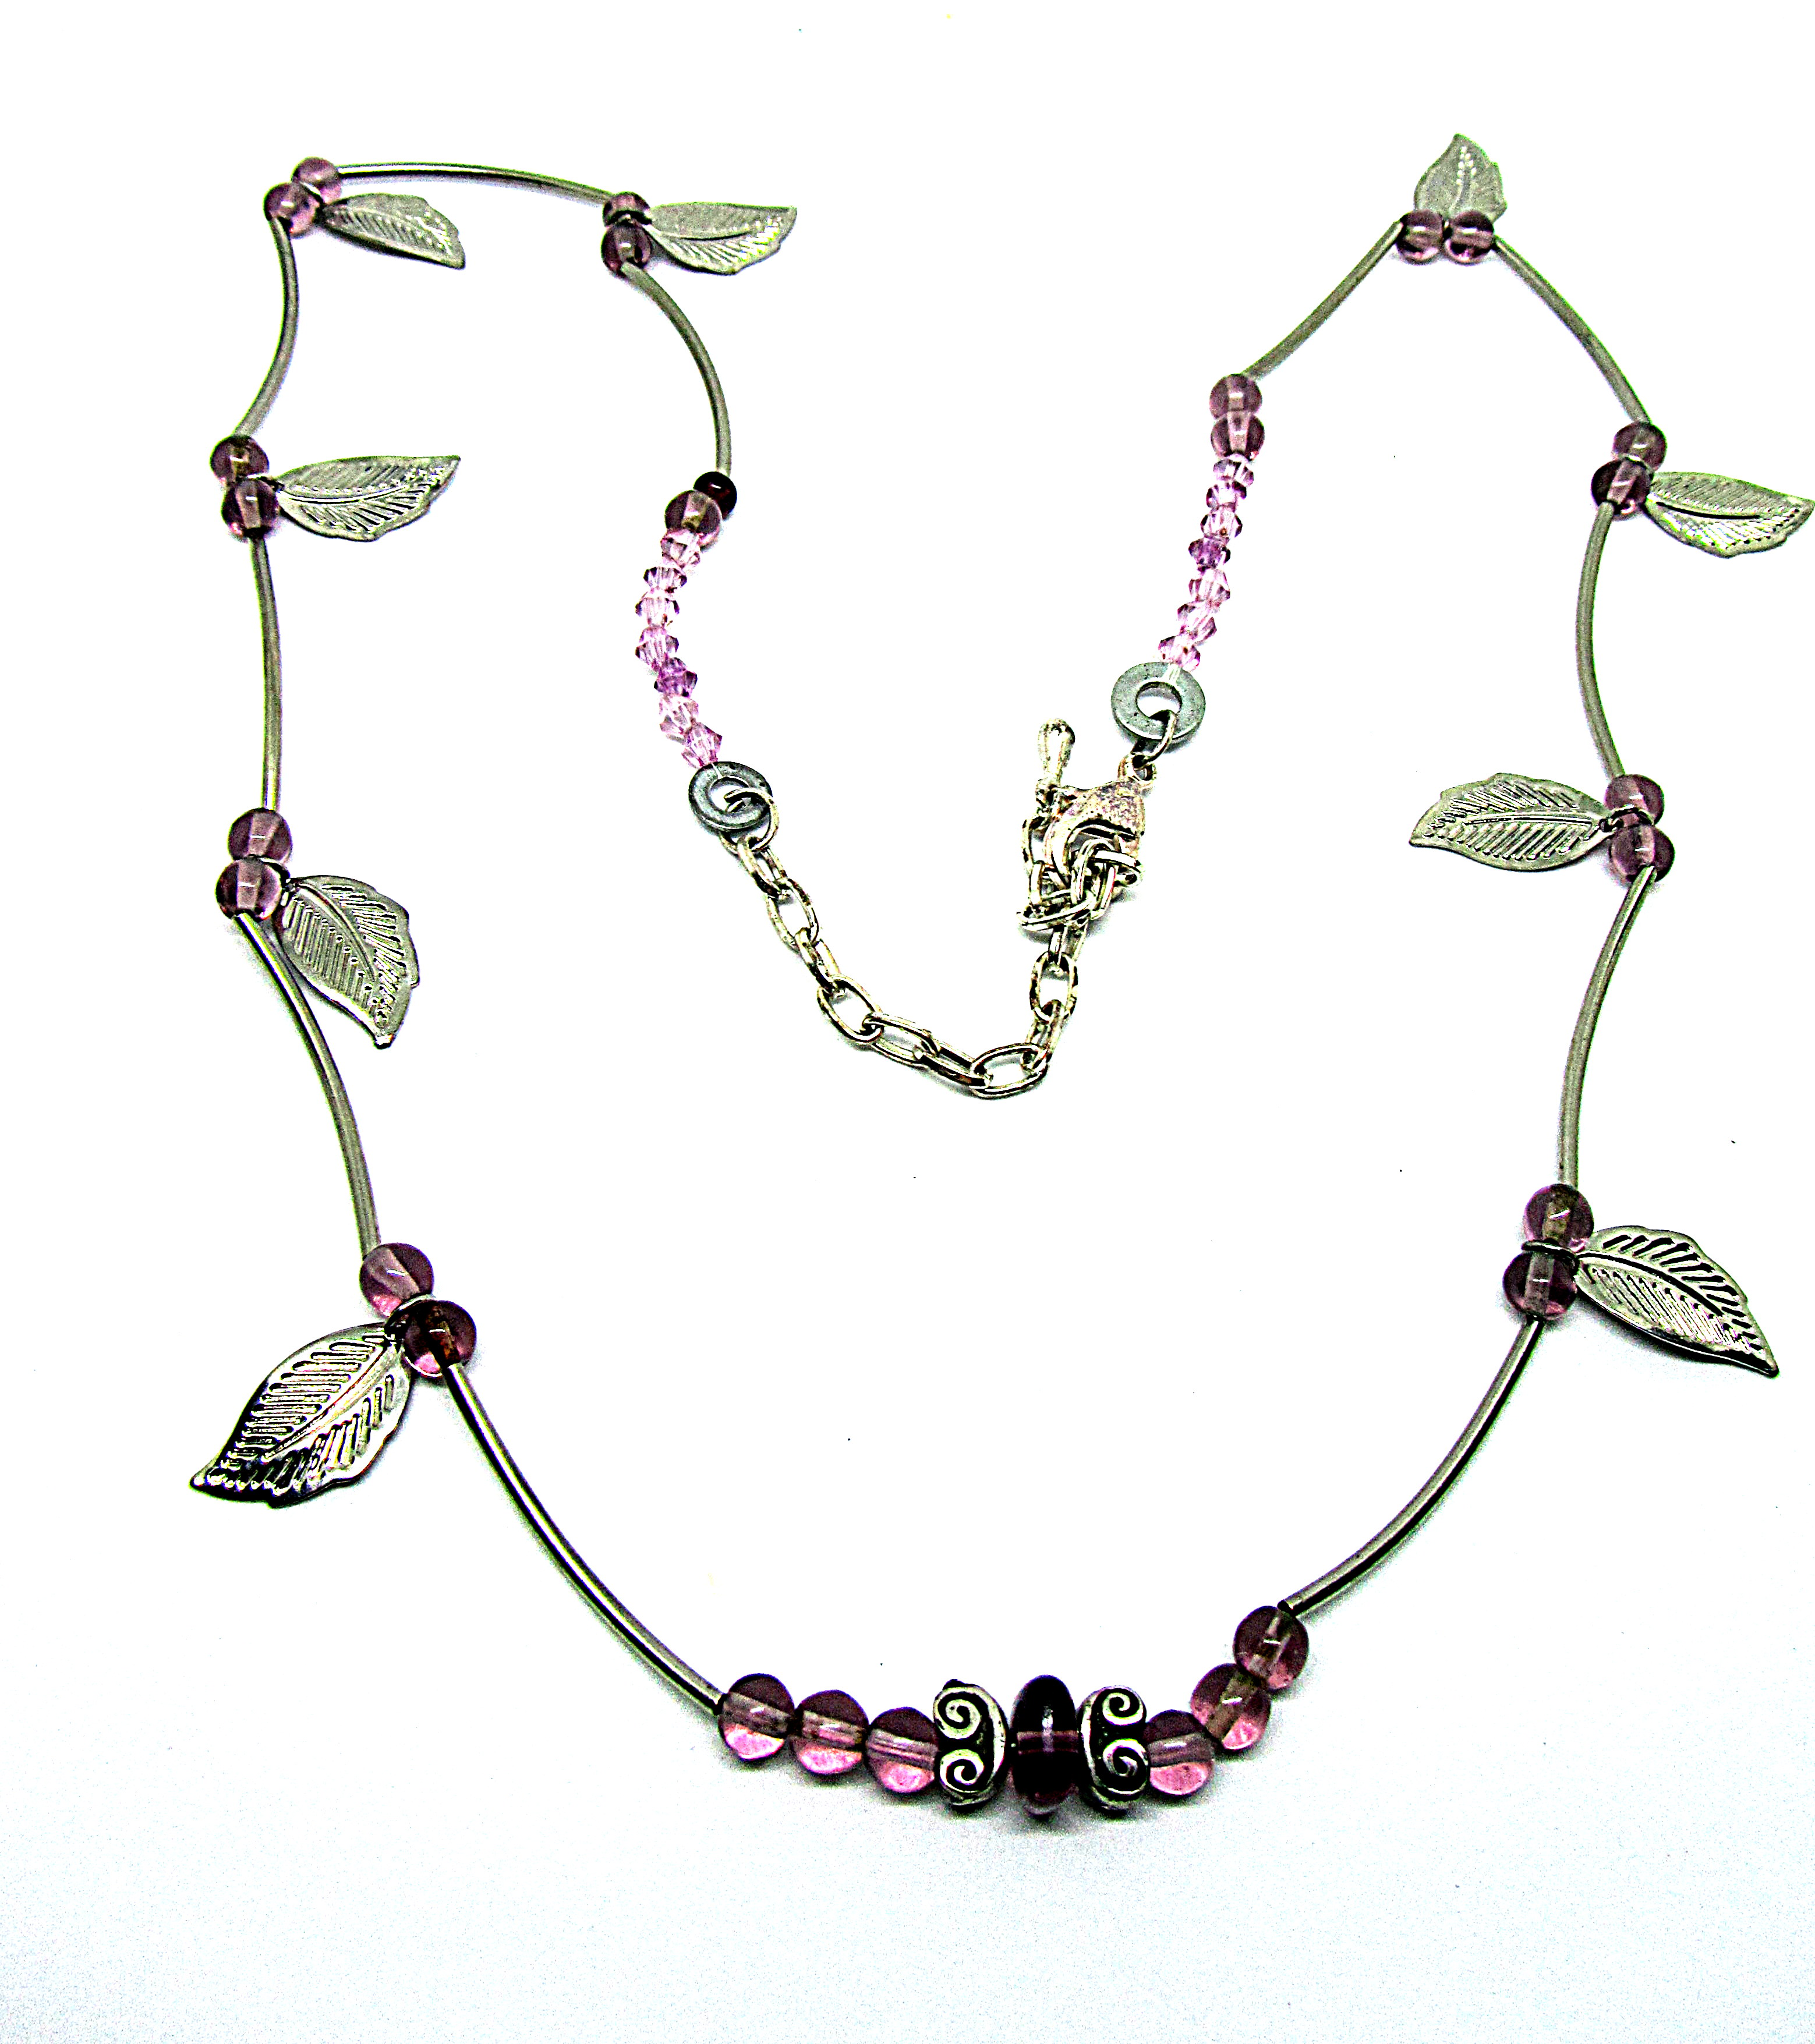 Necklace with colored glass